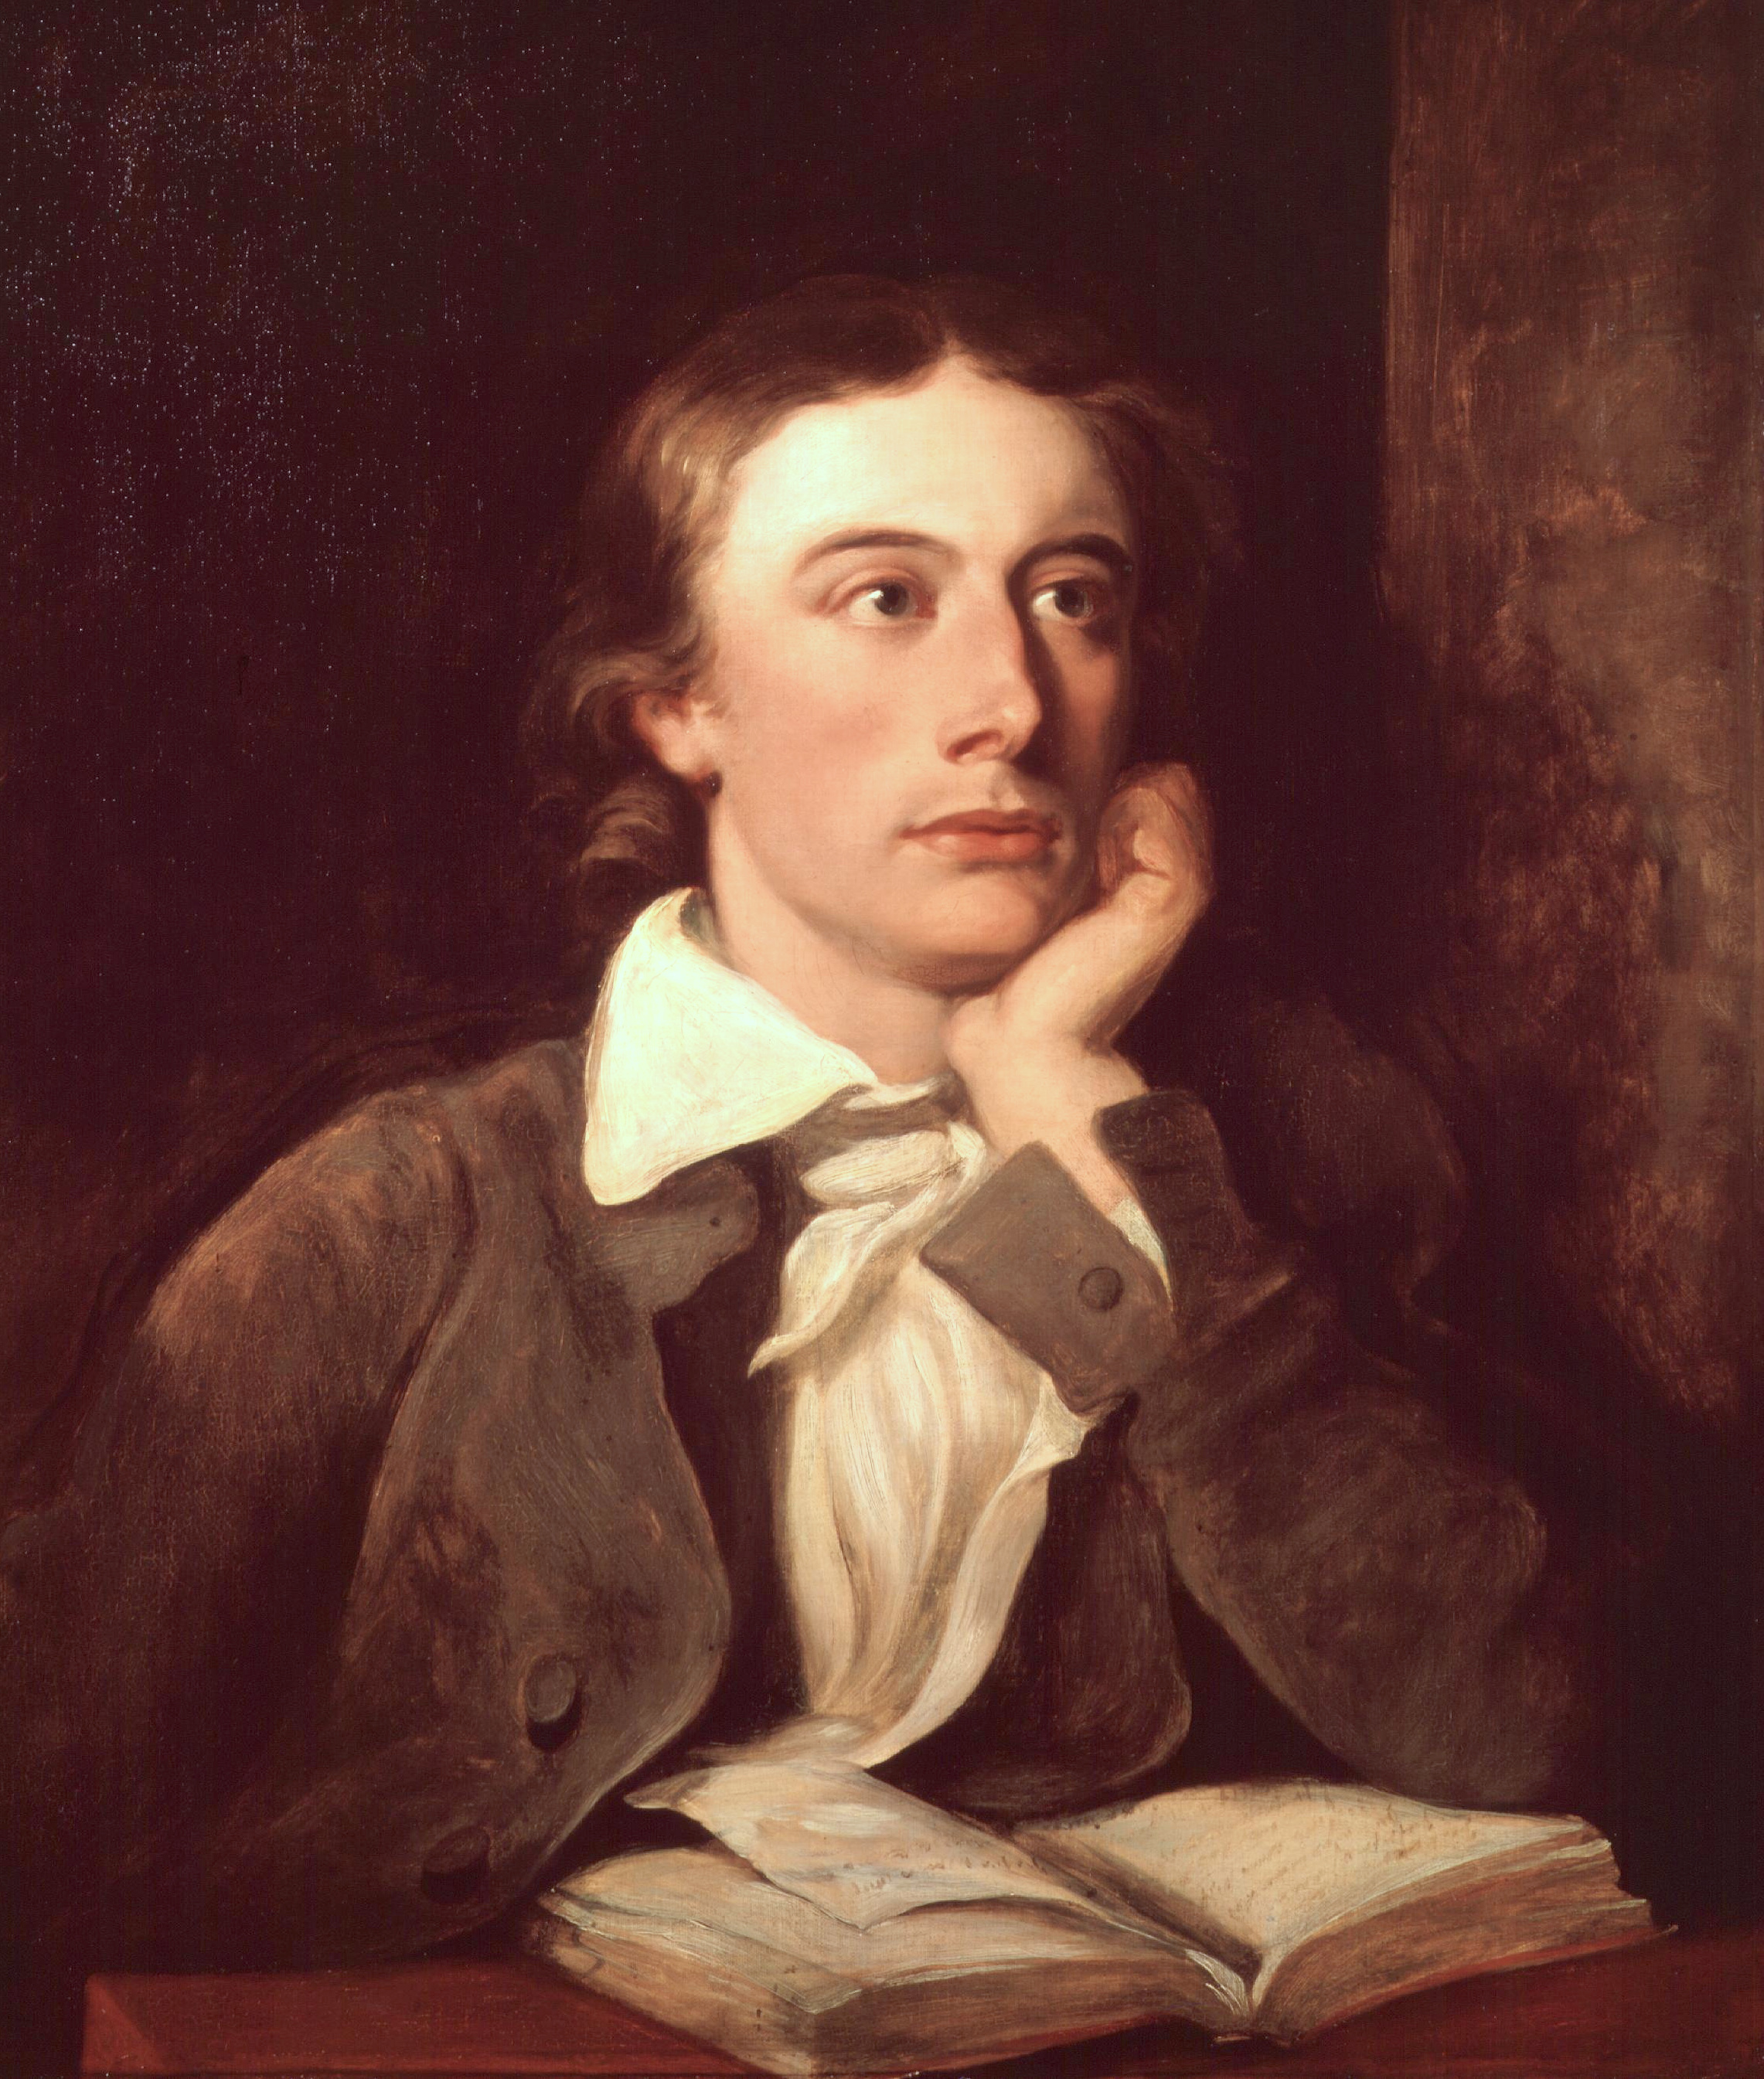 john keats essay an appreciation of to autumn by john keats at john keats john keats by william hilton jpg